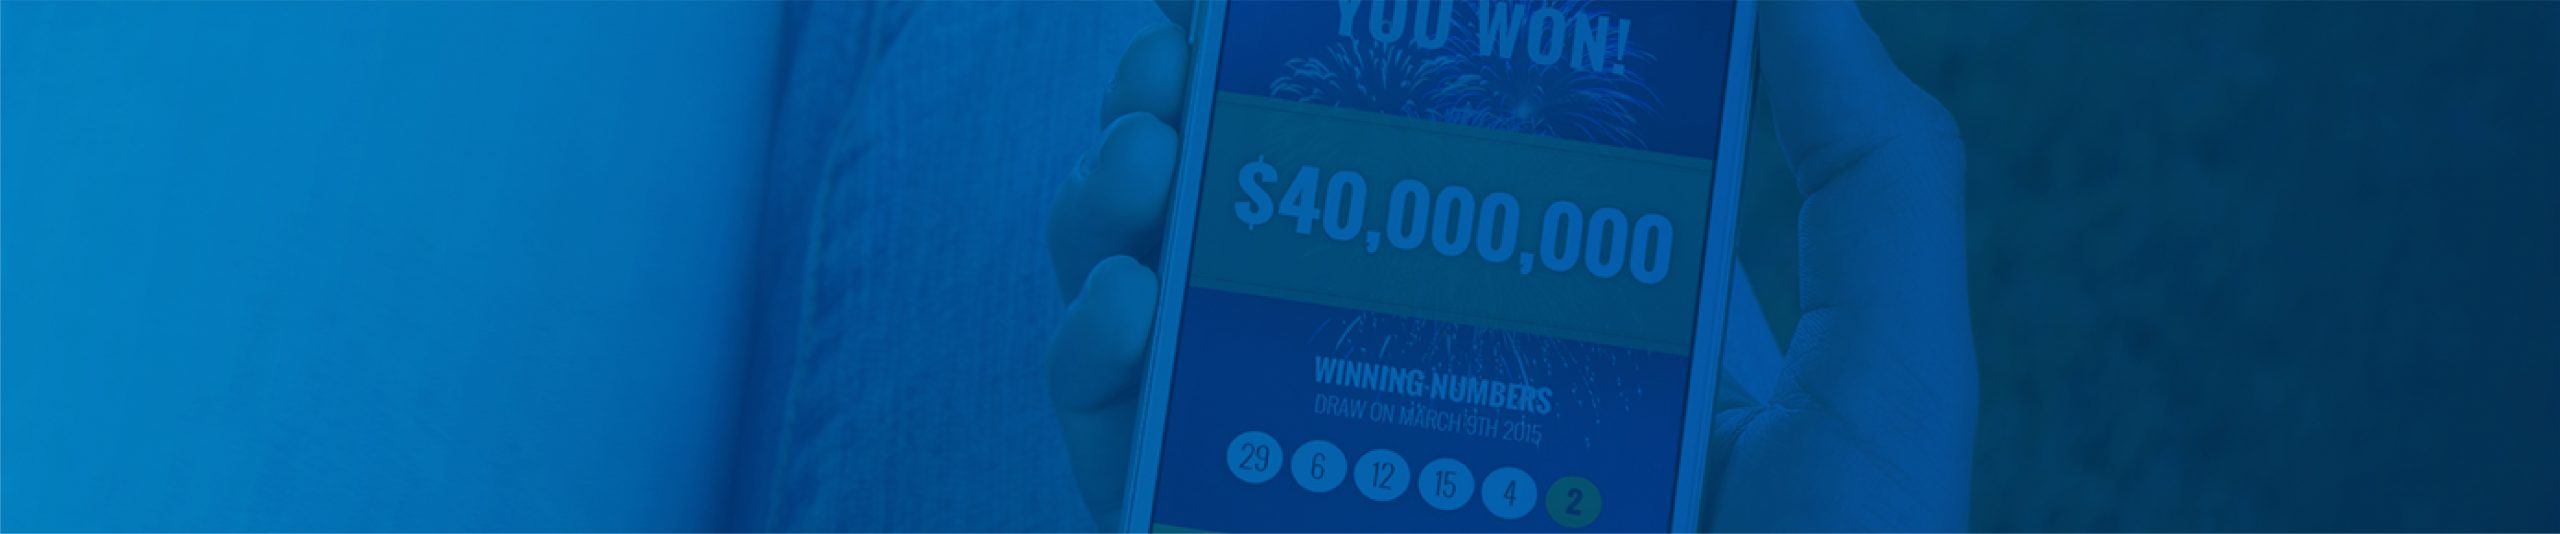 Mobile Lottery System header image